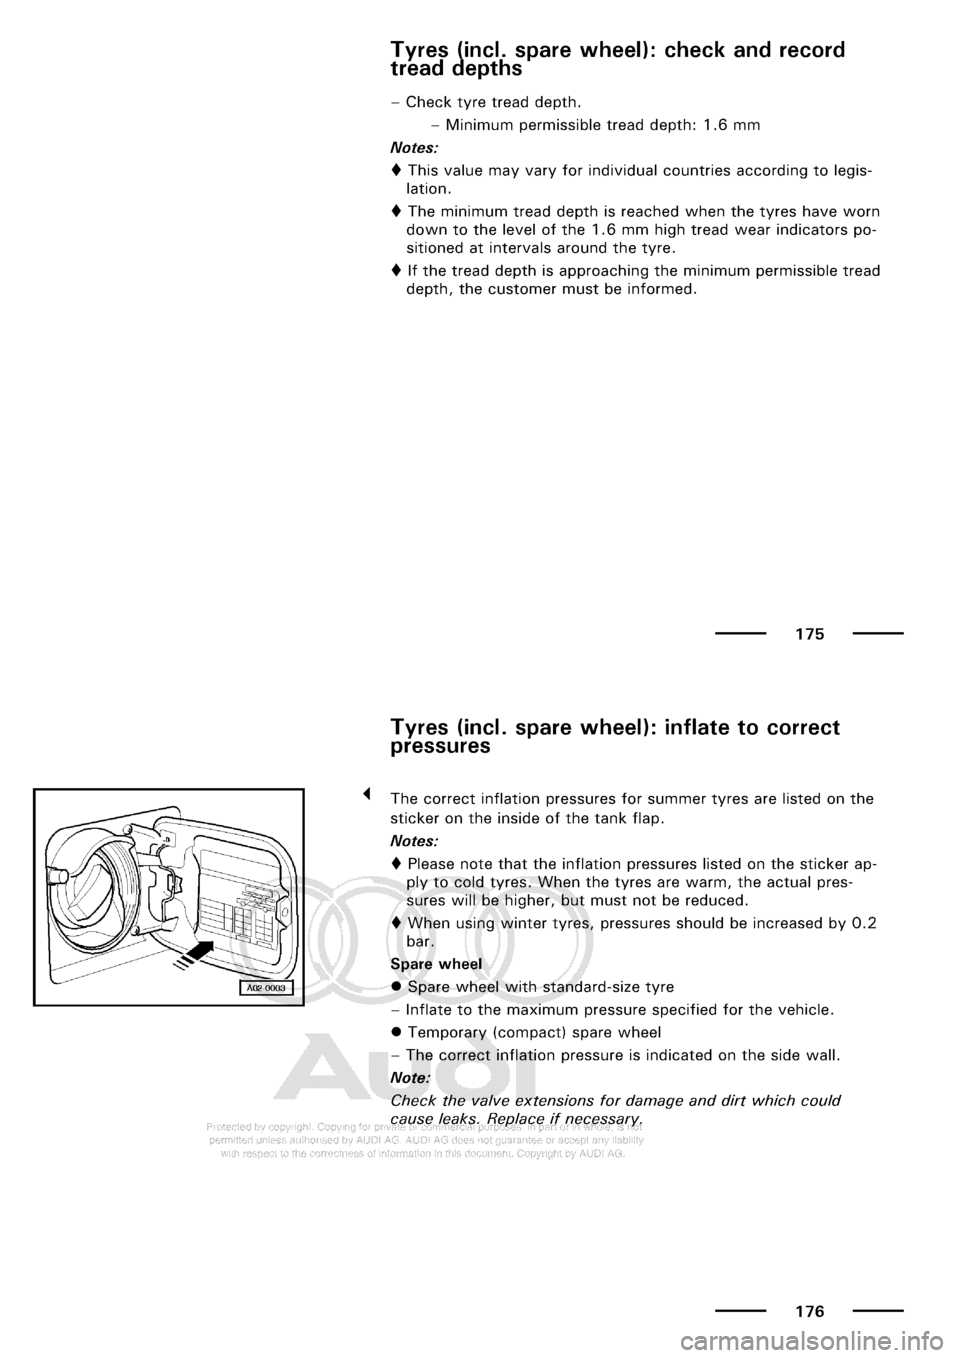 AUDI A3 2002 8L / 1.G Maintenance Owners Manual